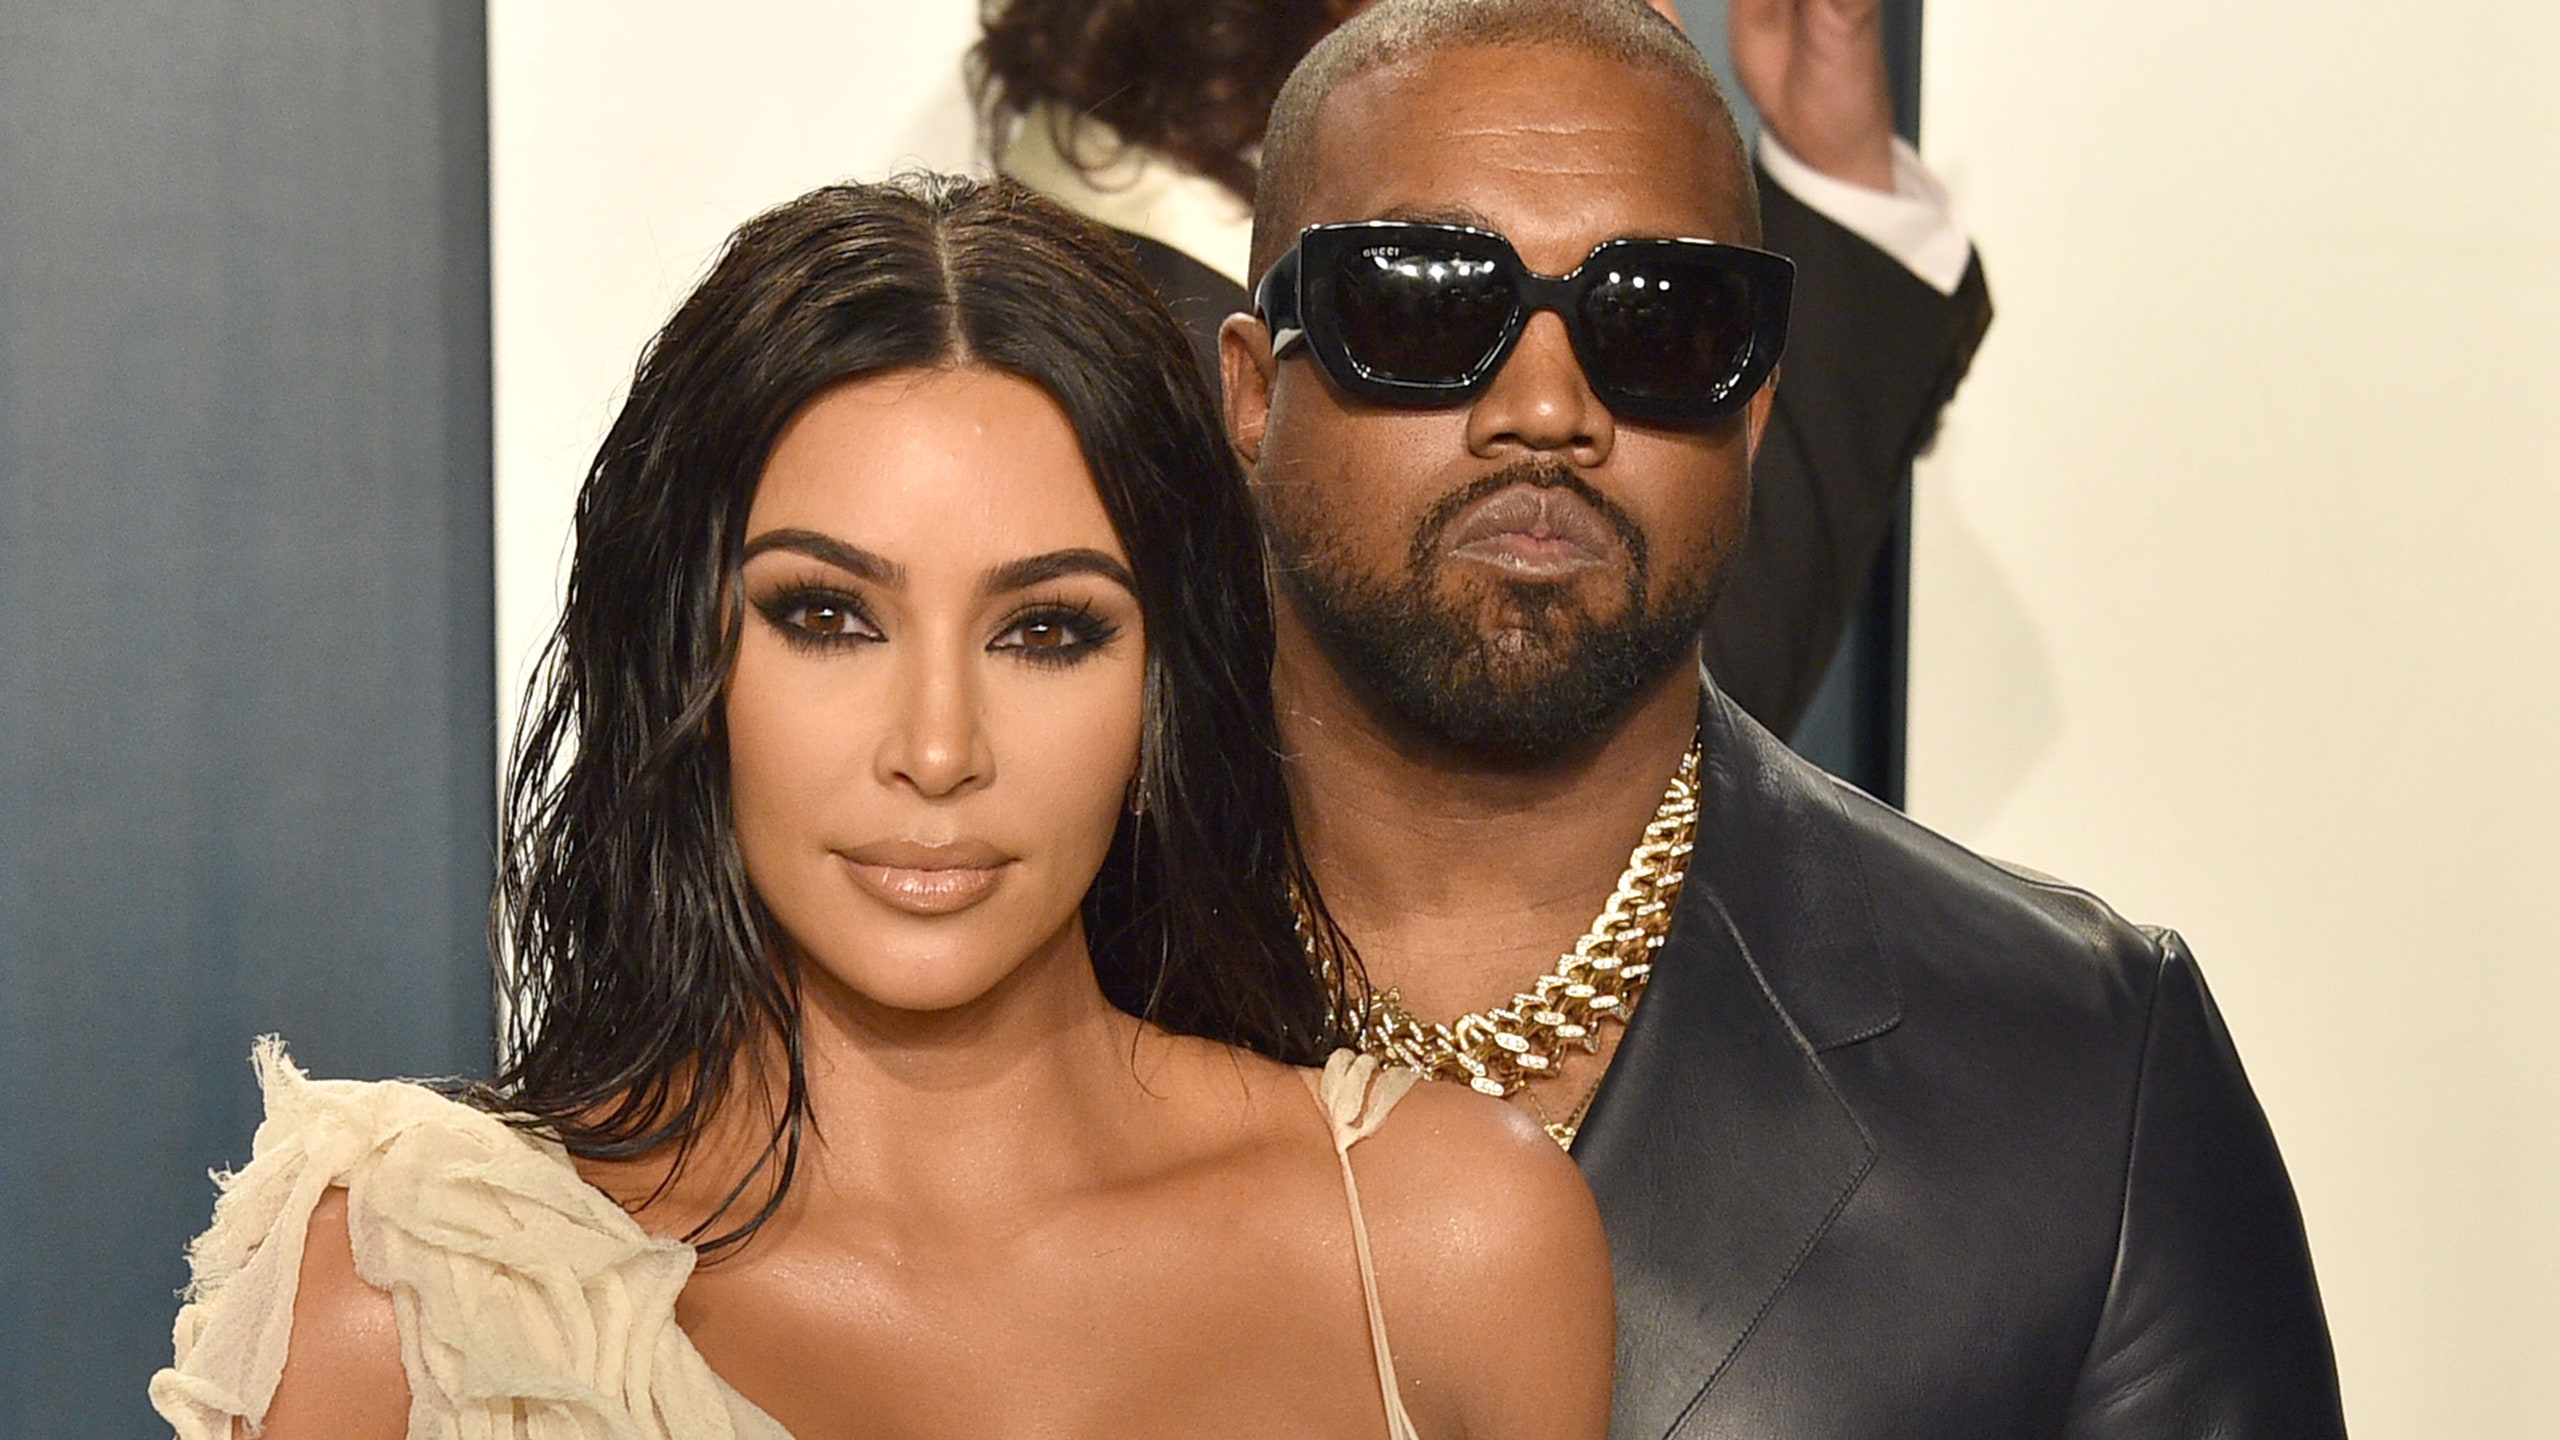 Kanye West Allegedly Changed His Number And Told Kim Kardashian To Reach Him Through Security